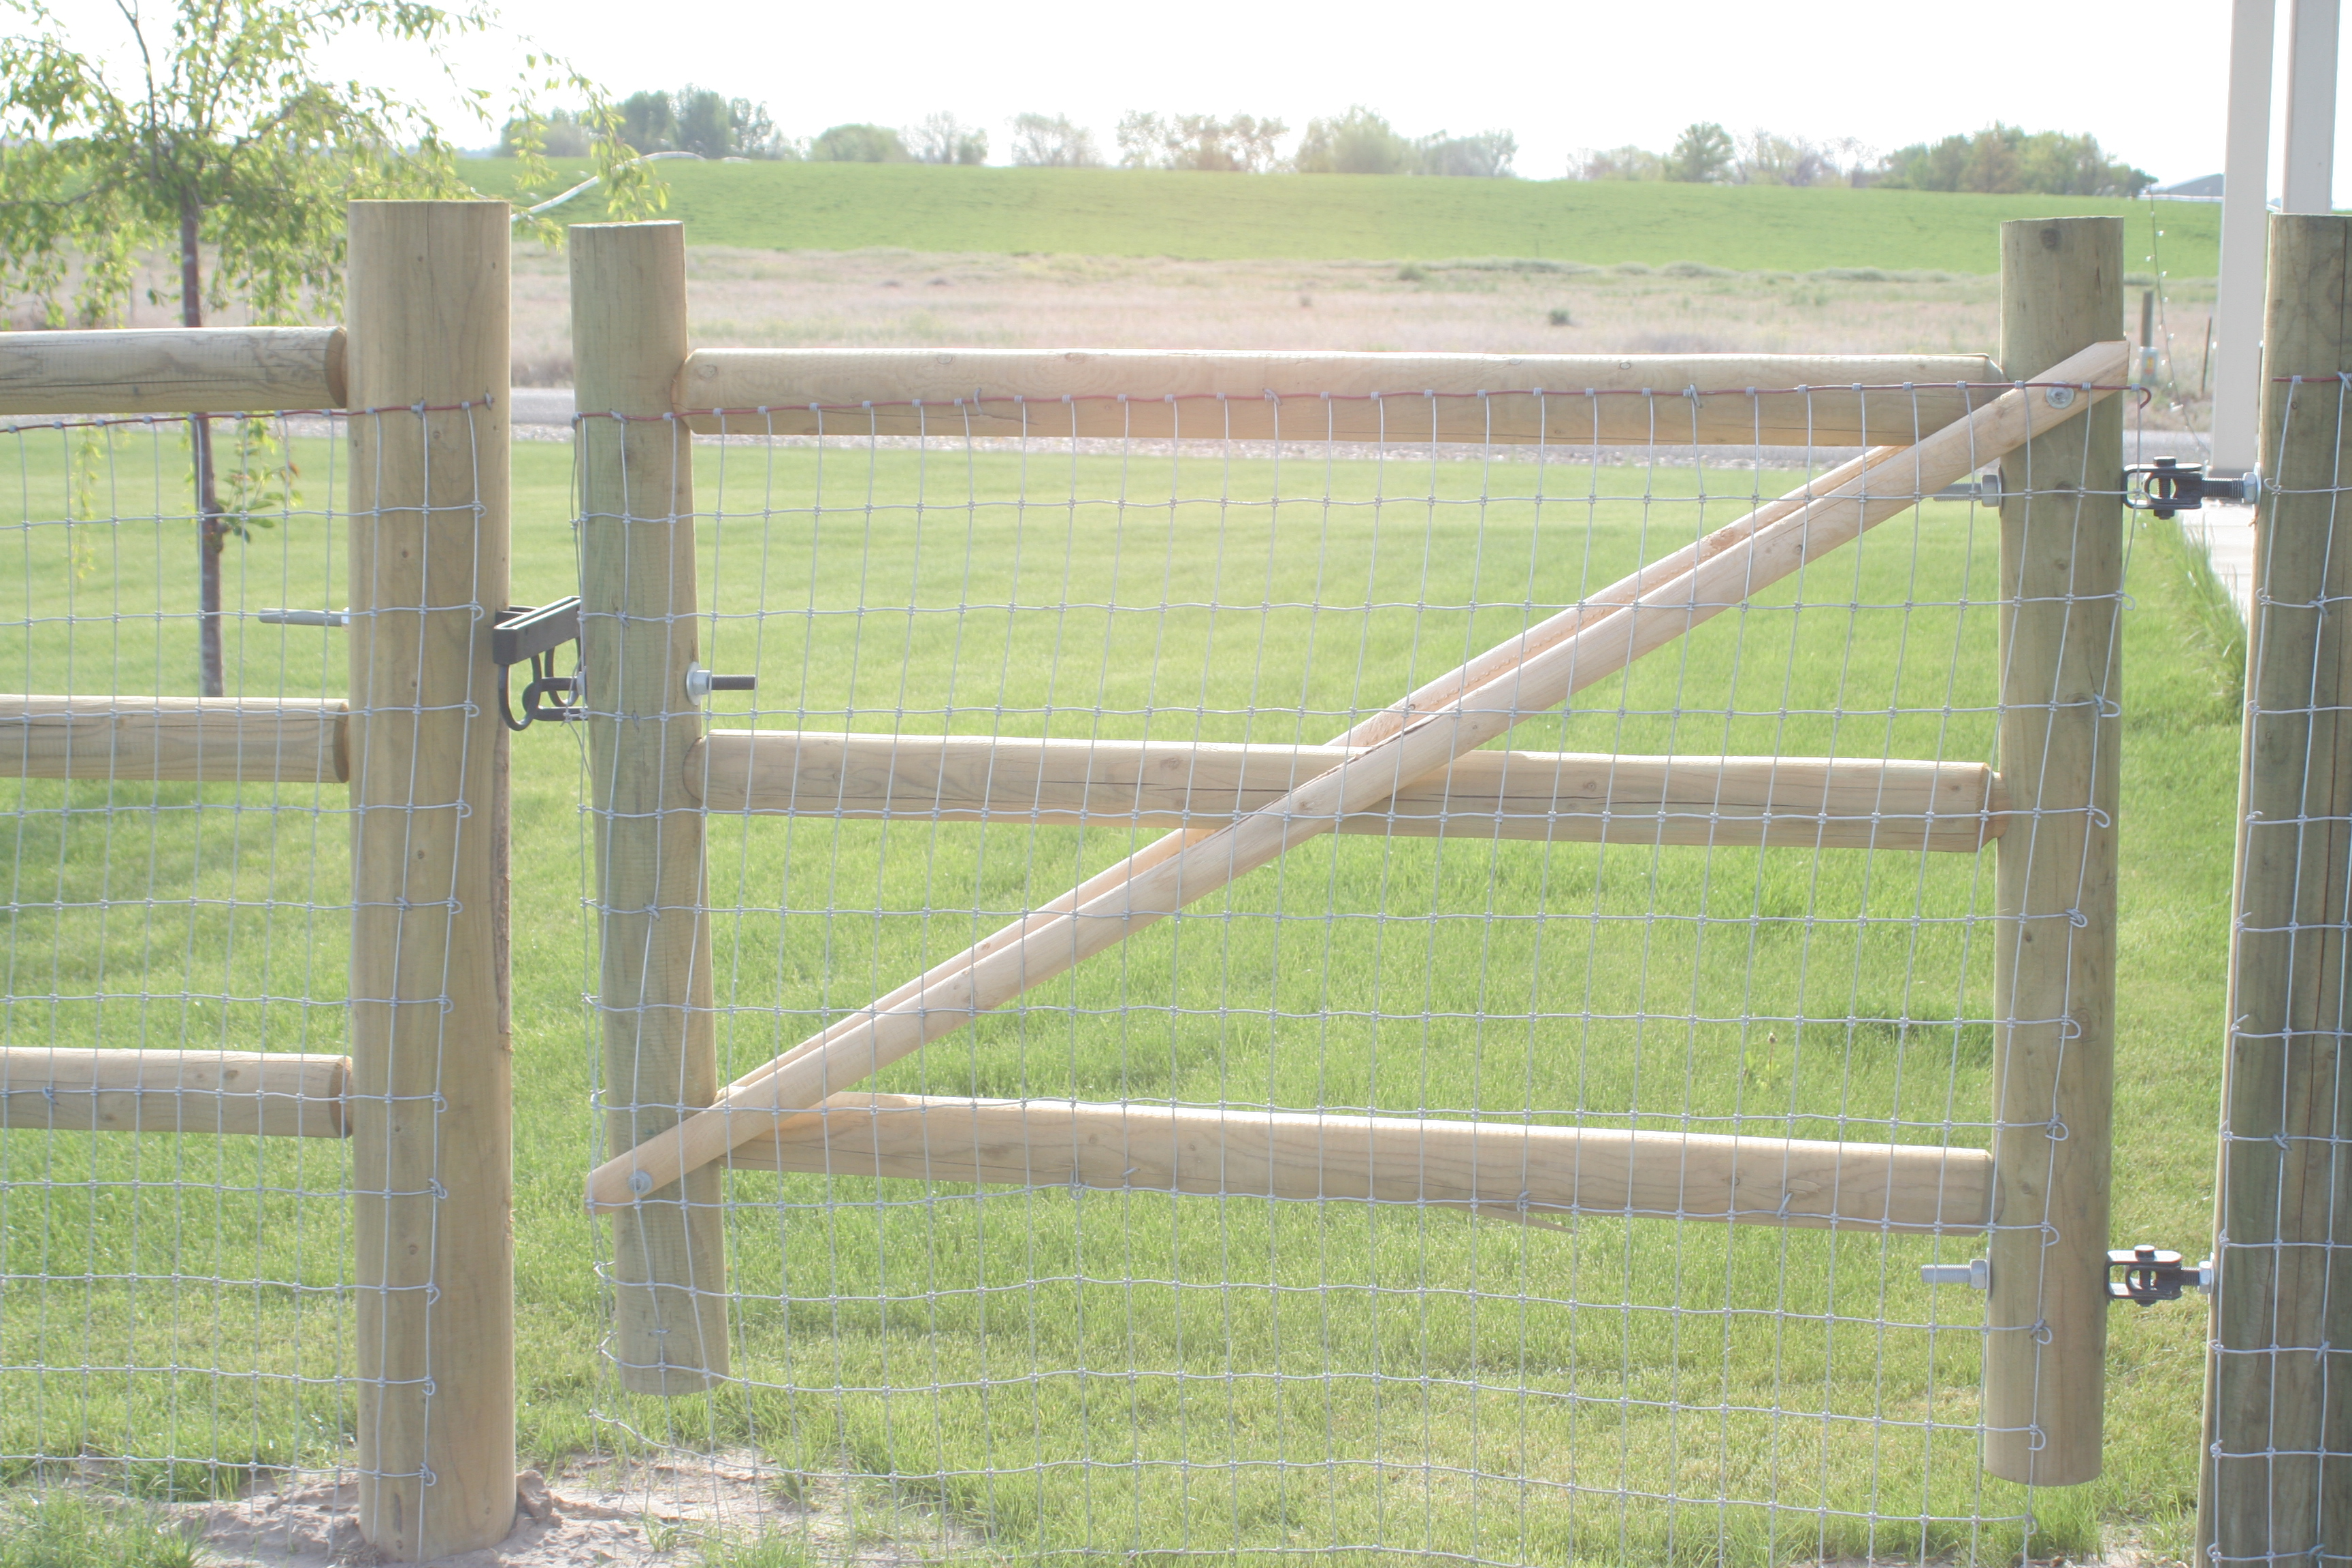 Post And Pole Fencing : Idaho doweled gates parma post and pole